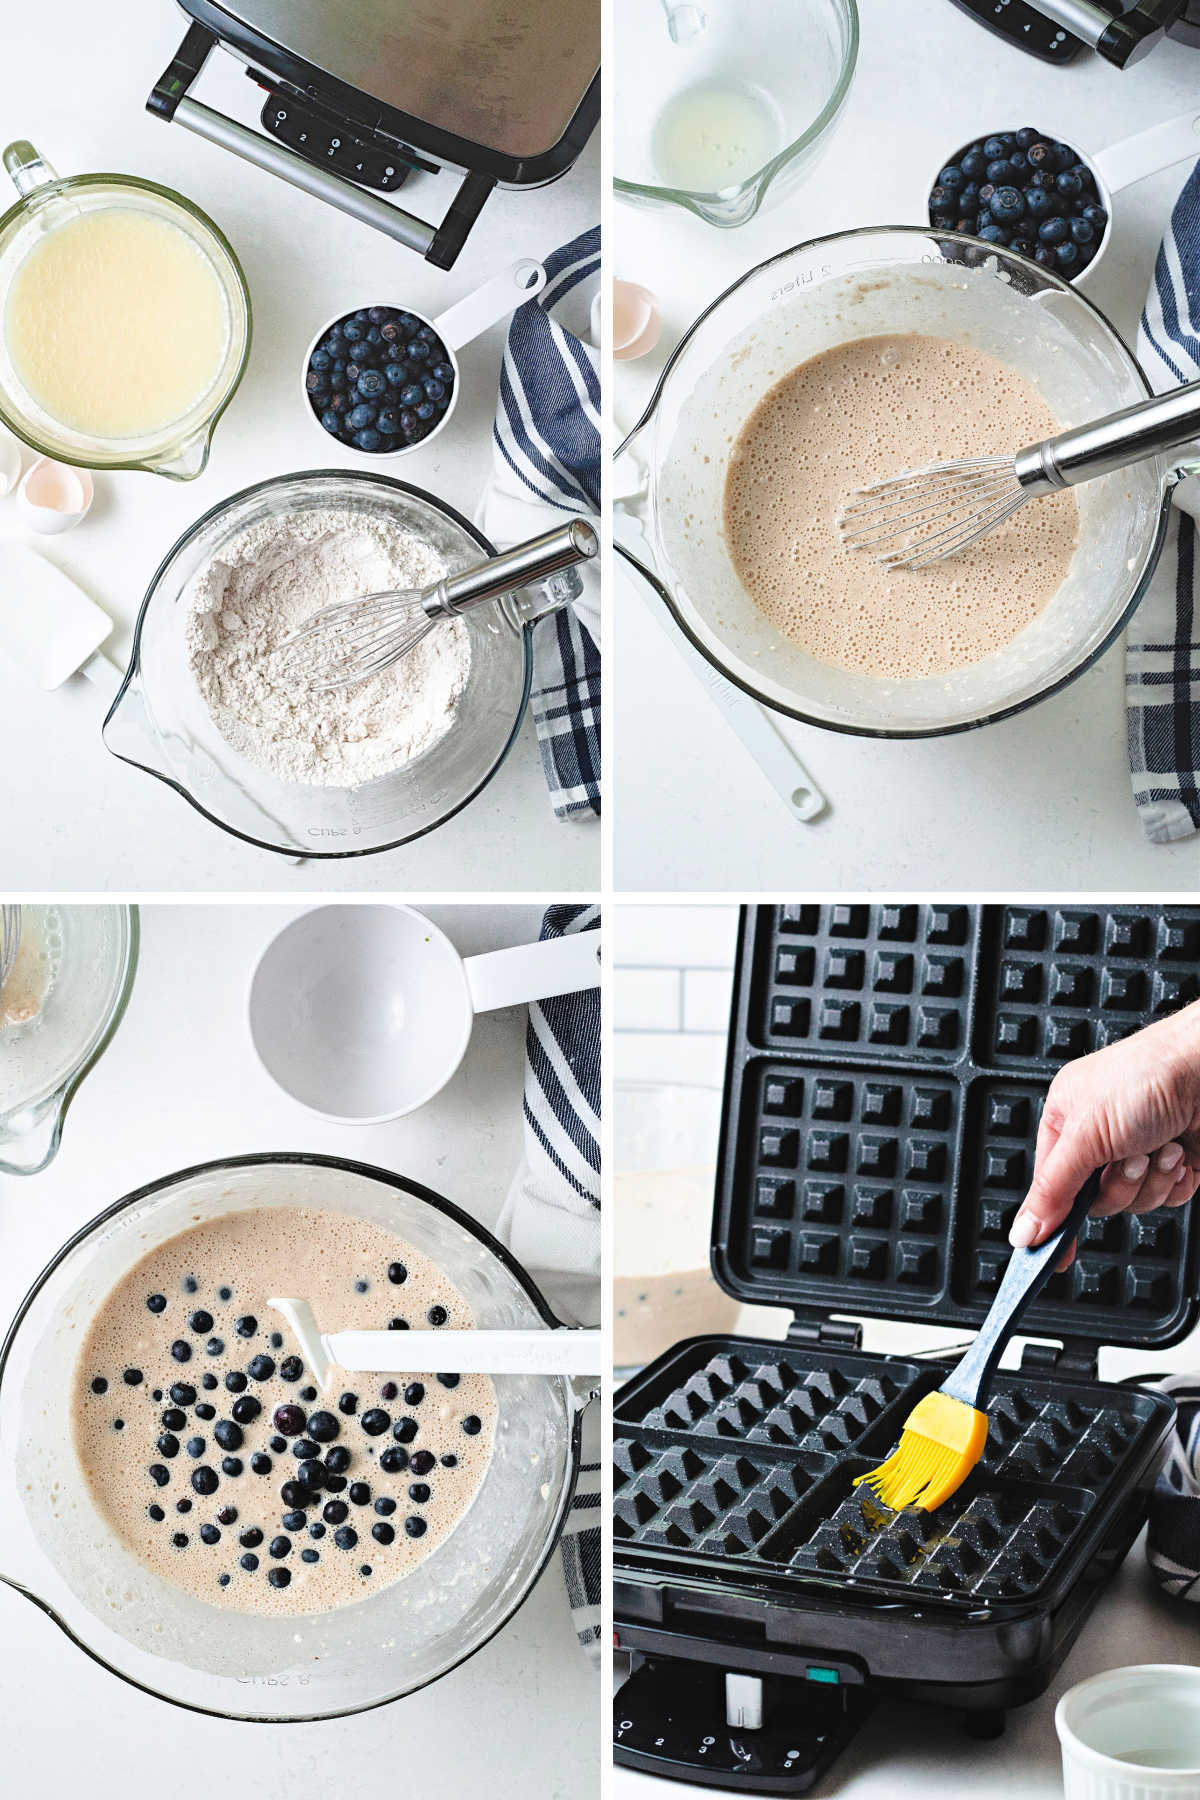 process steps for making blueberry waffles: whisk dry and wet ingredients separately; combine wet and dry ingredients; fold in fresh blueberries; brush waffle iron with oil.